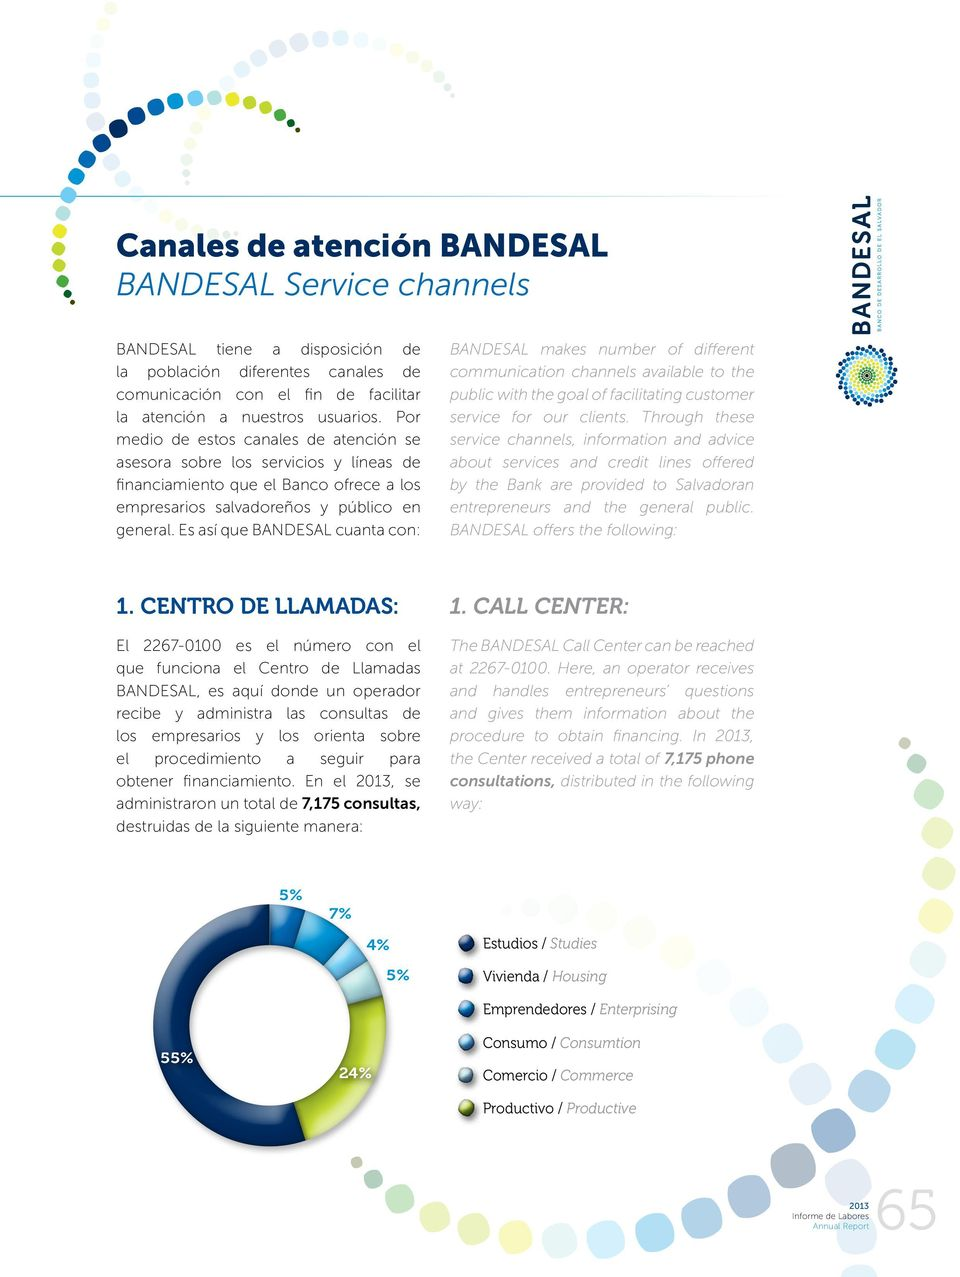 Es así que BANDESAL cuanta con: BANDESAL makes number of different communication channels available to the public with the goal of facilitating customer service for our clients.